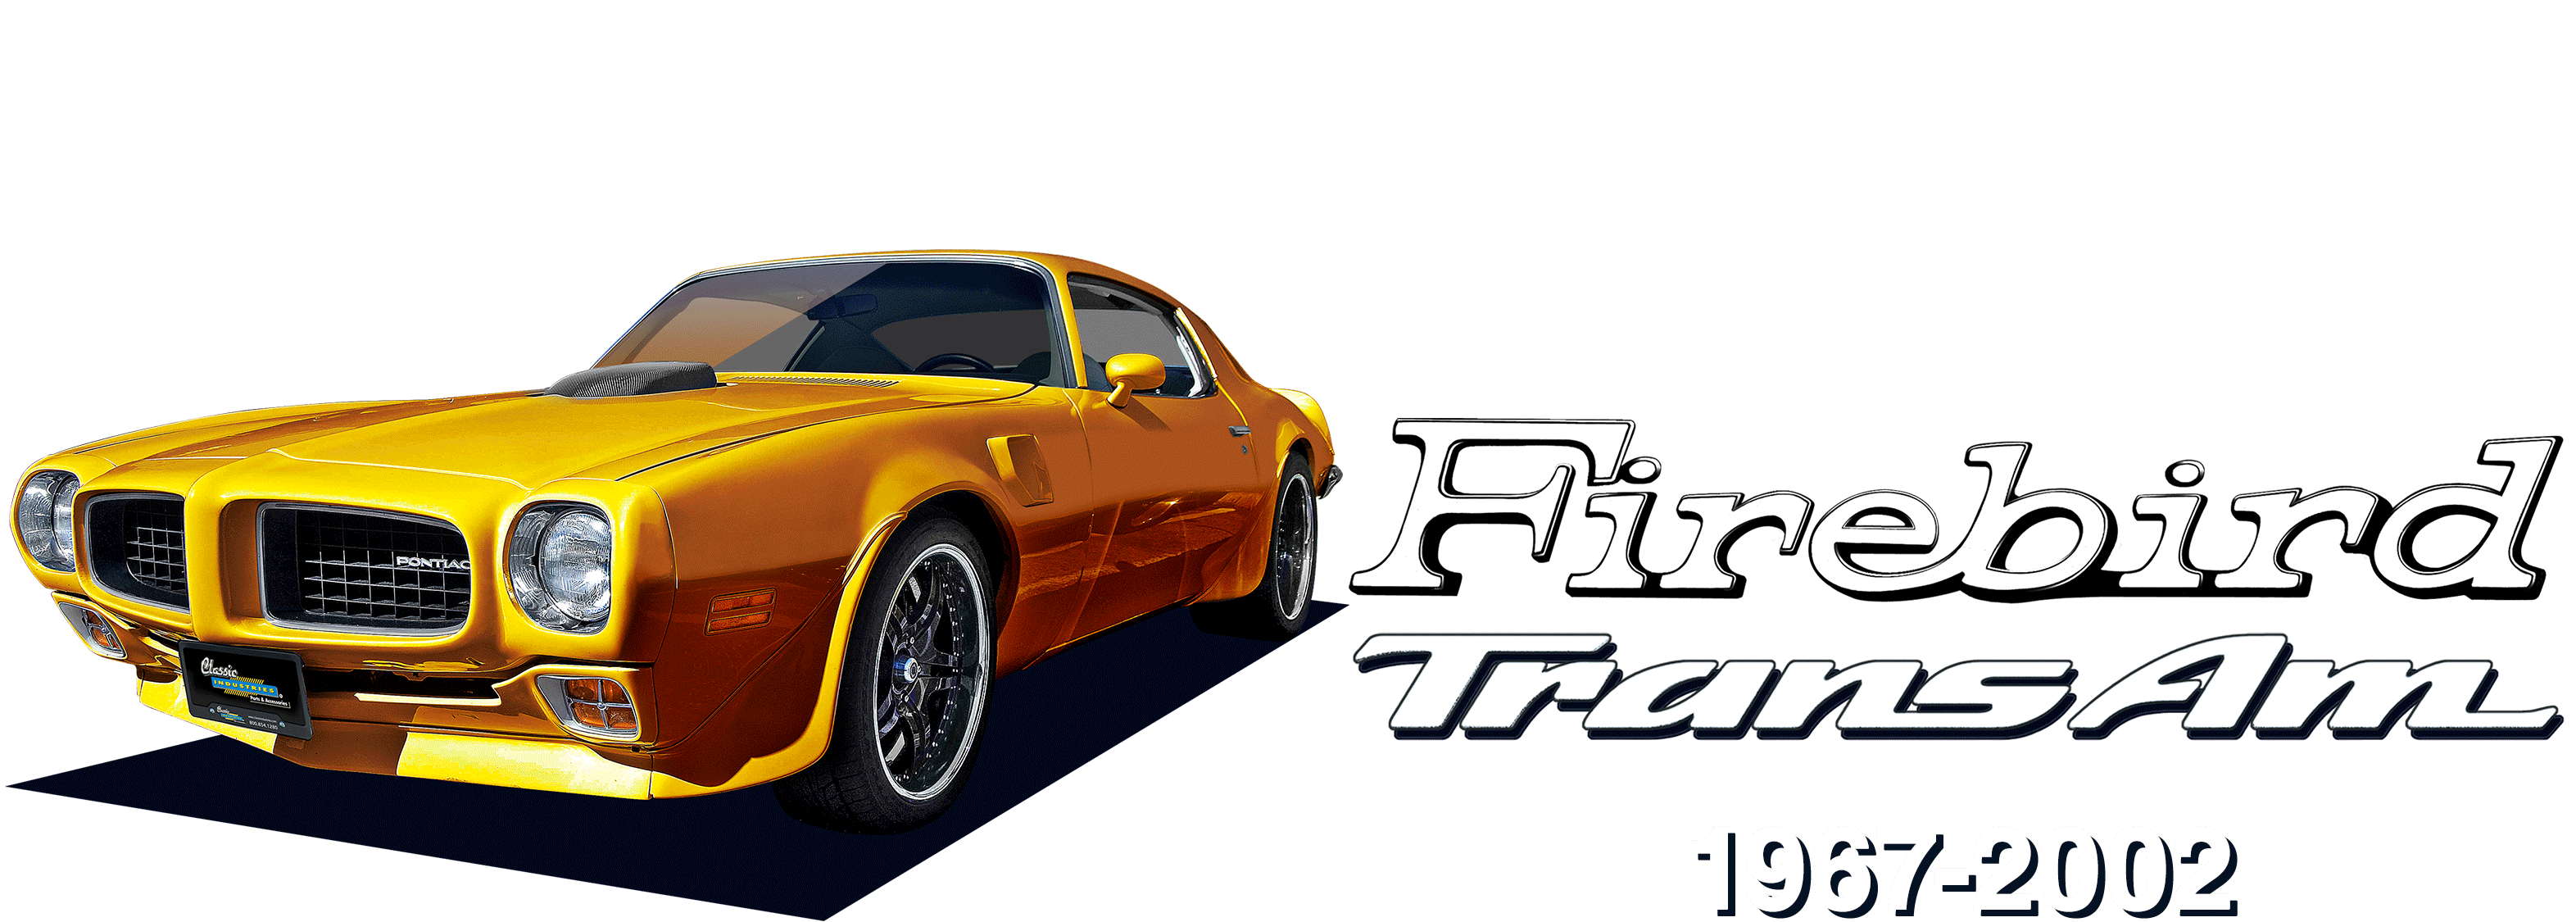 Firebird-Prod-Vehicle-desktop.png